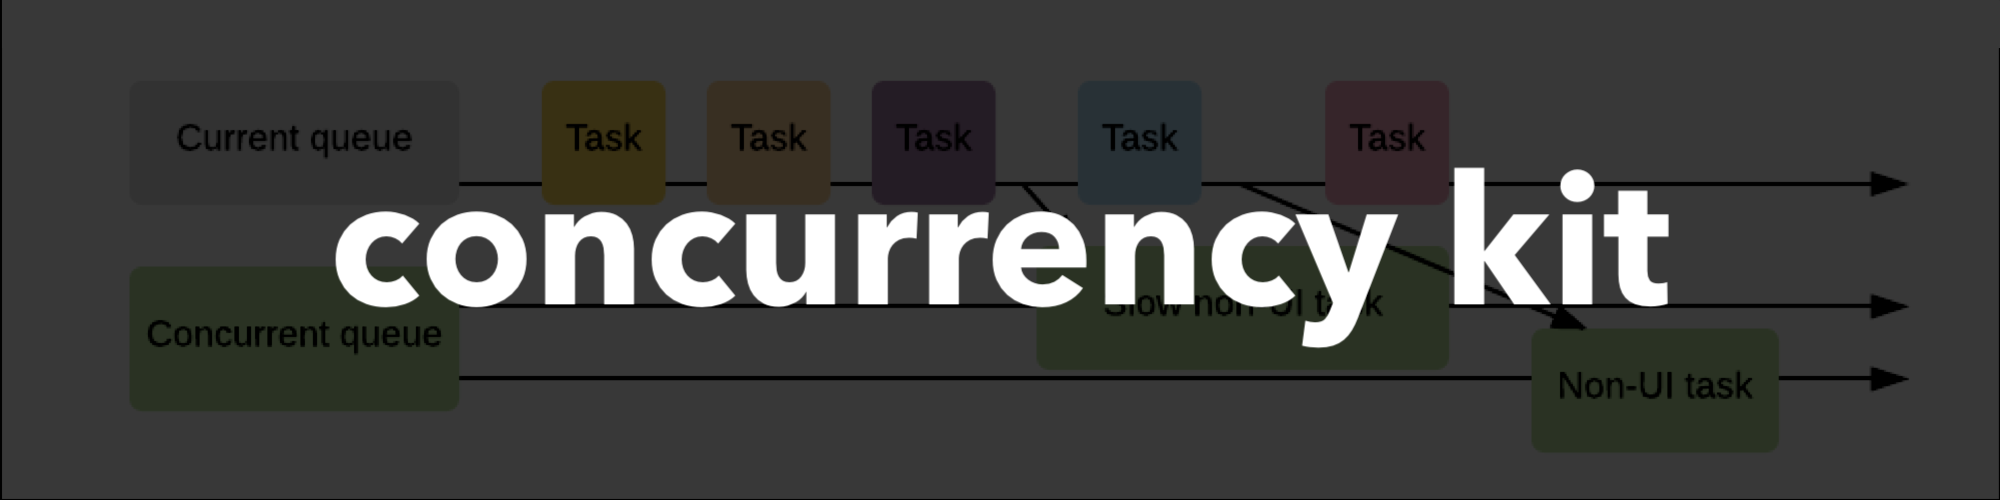 concurrency-kit